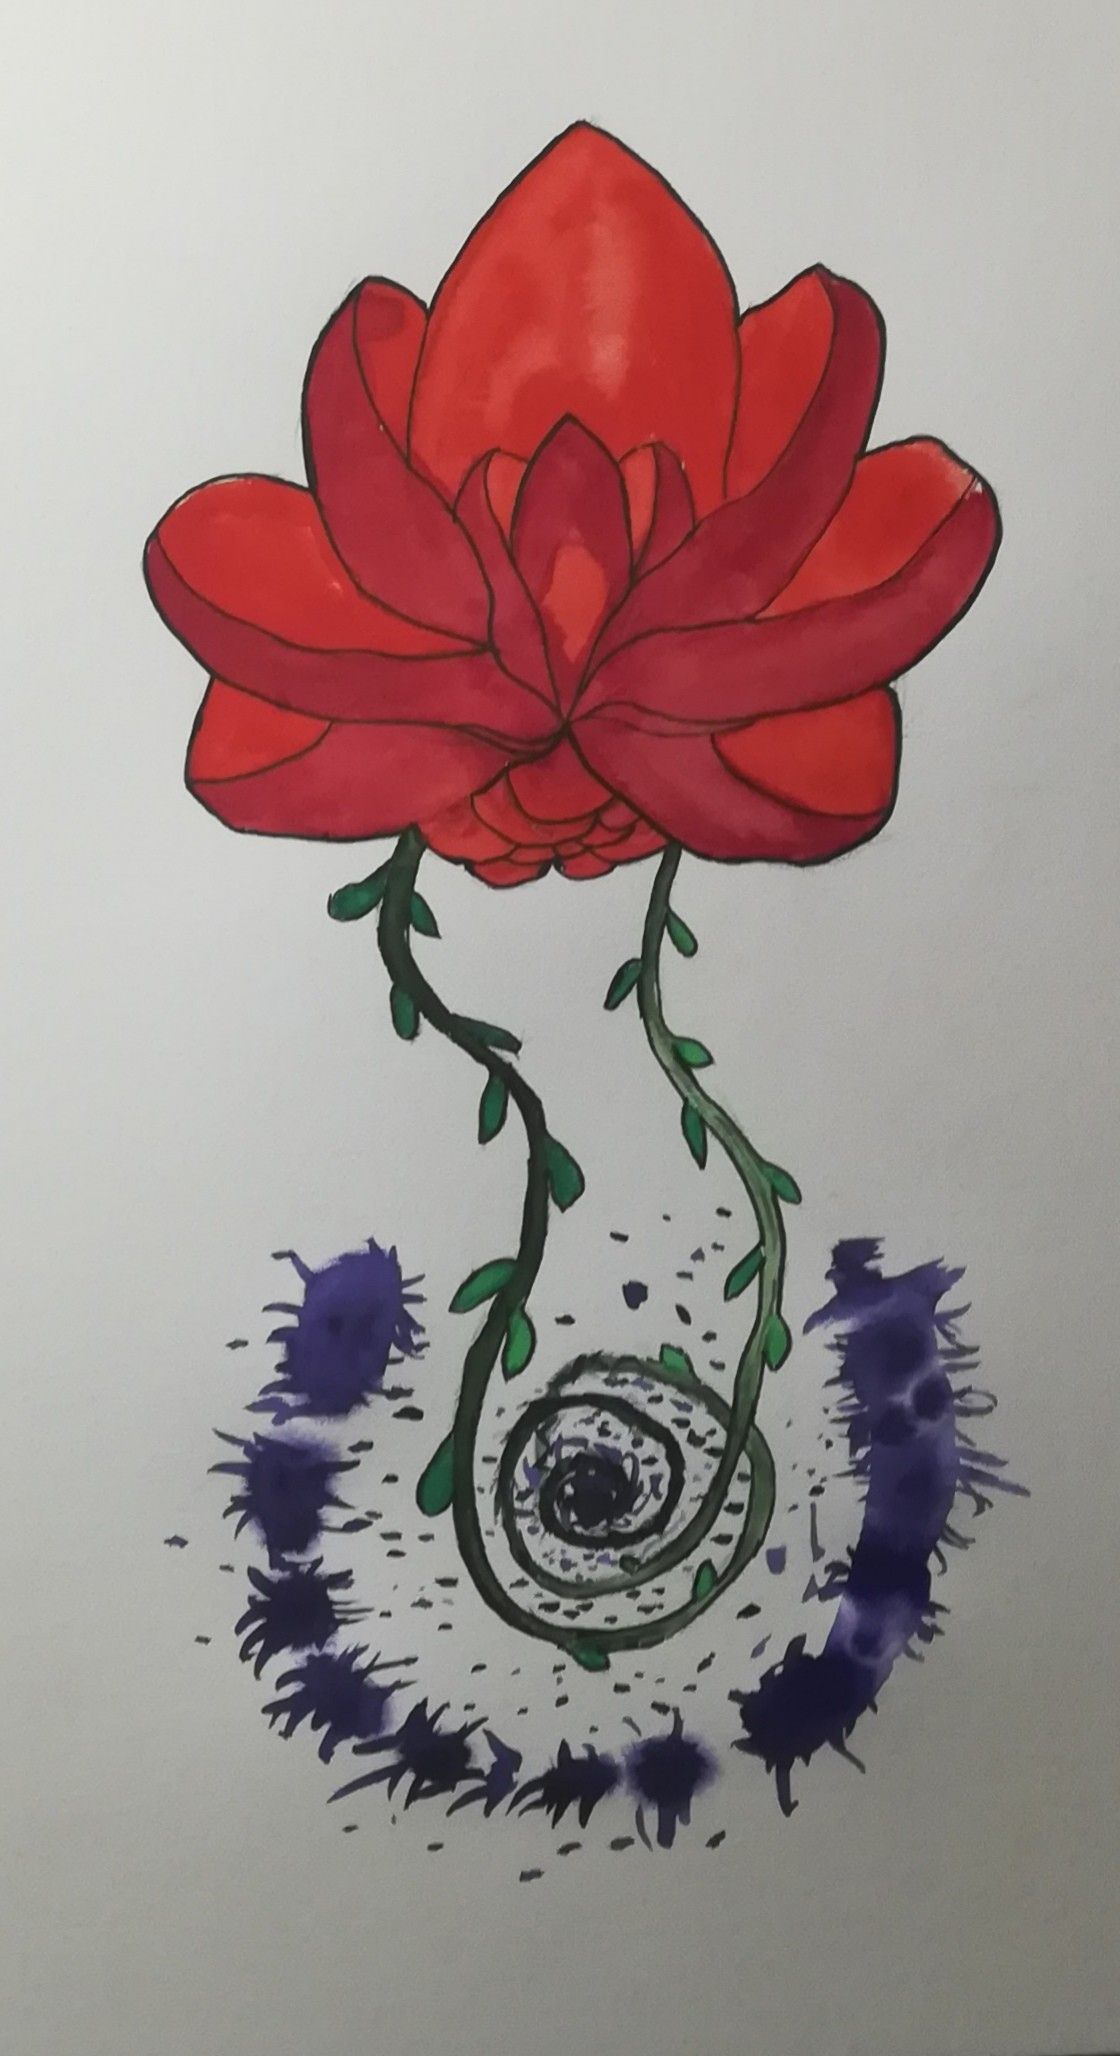 water color/aquarelle drawing of lotus flower with vines